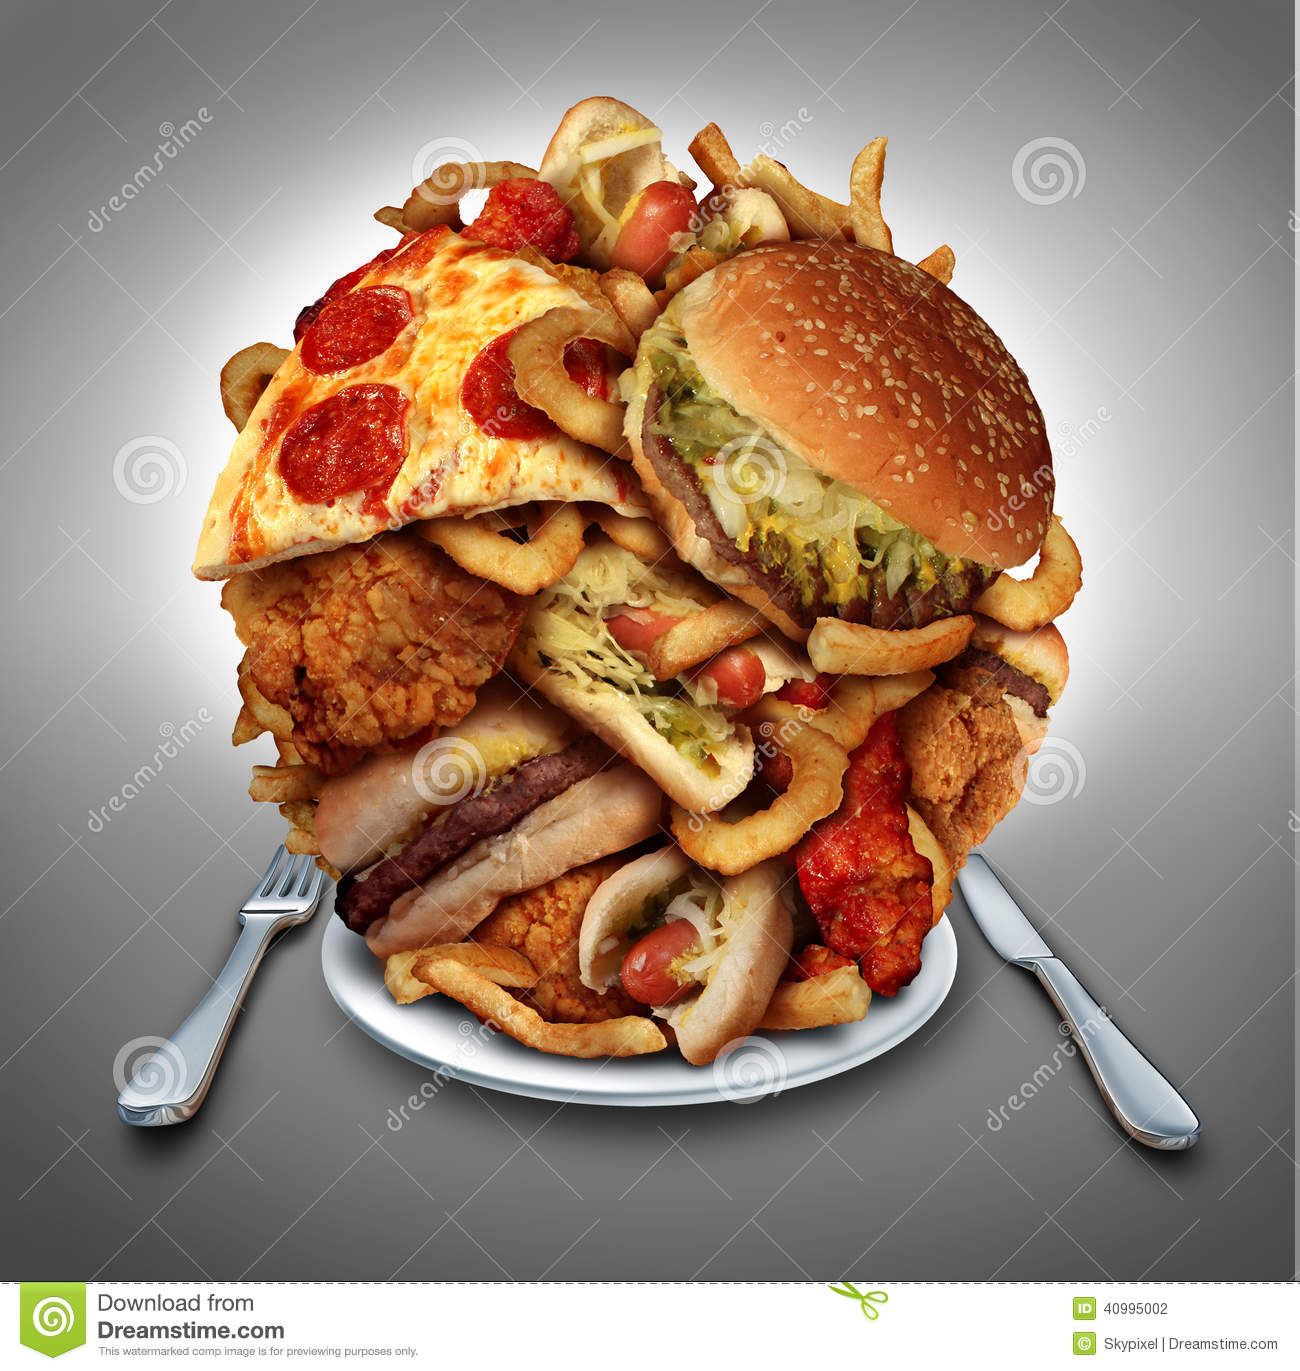 Transfat And Fast Food